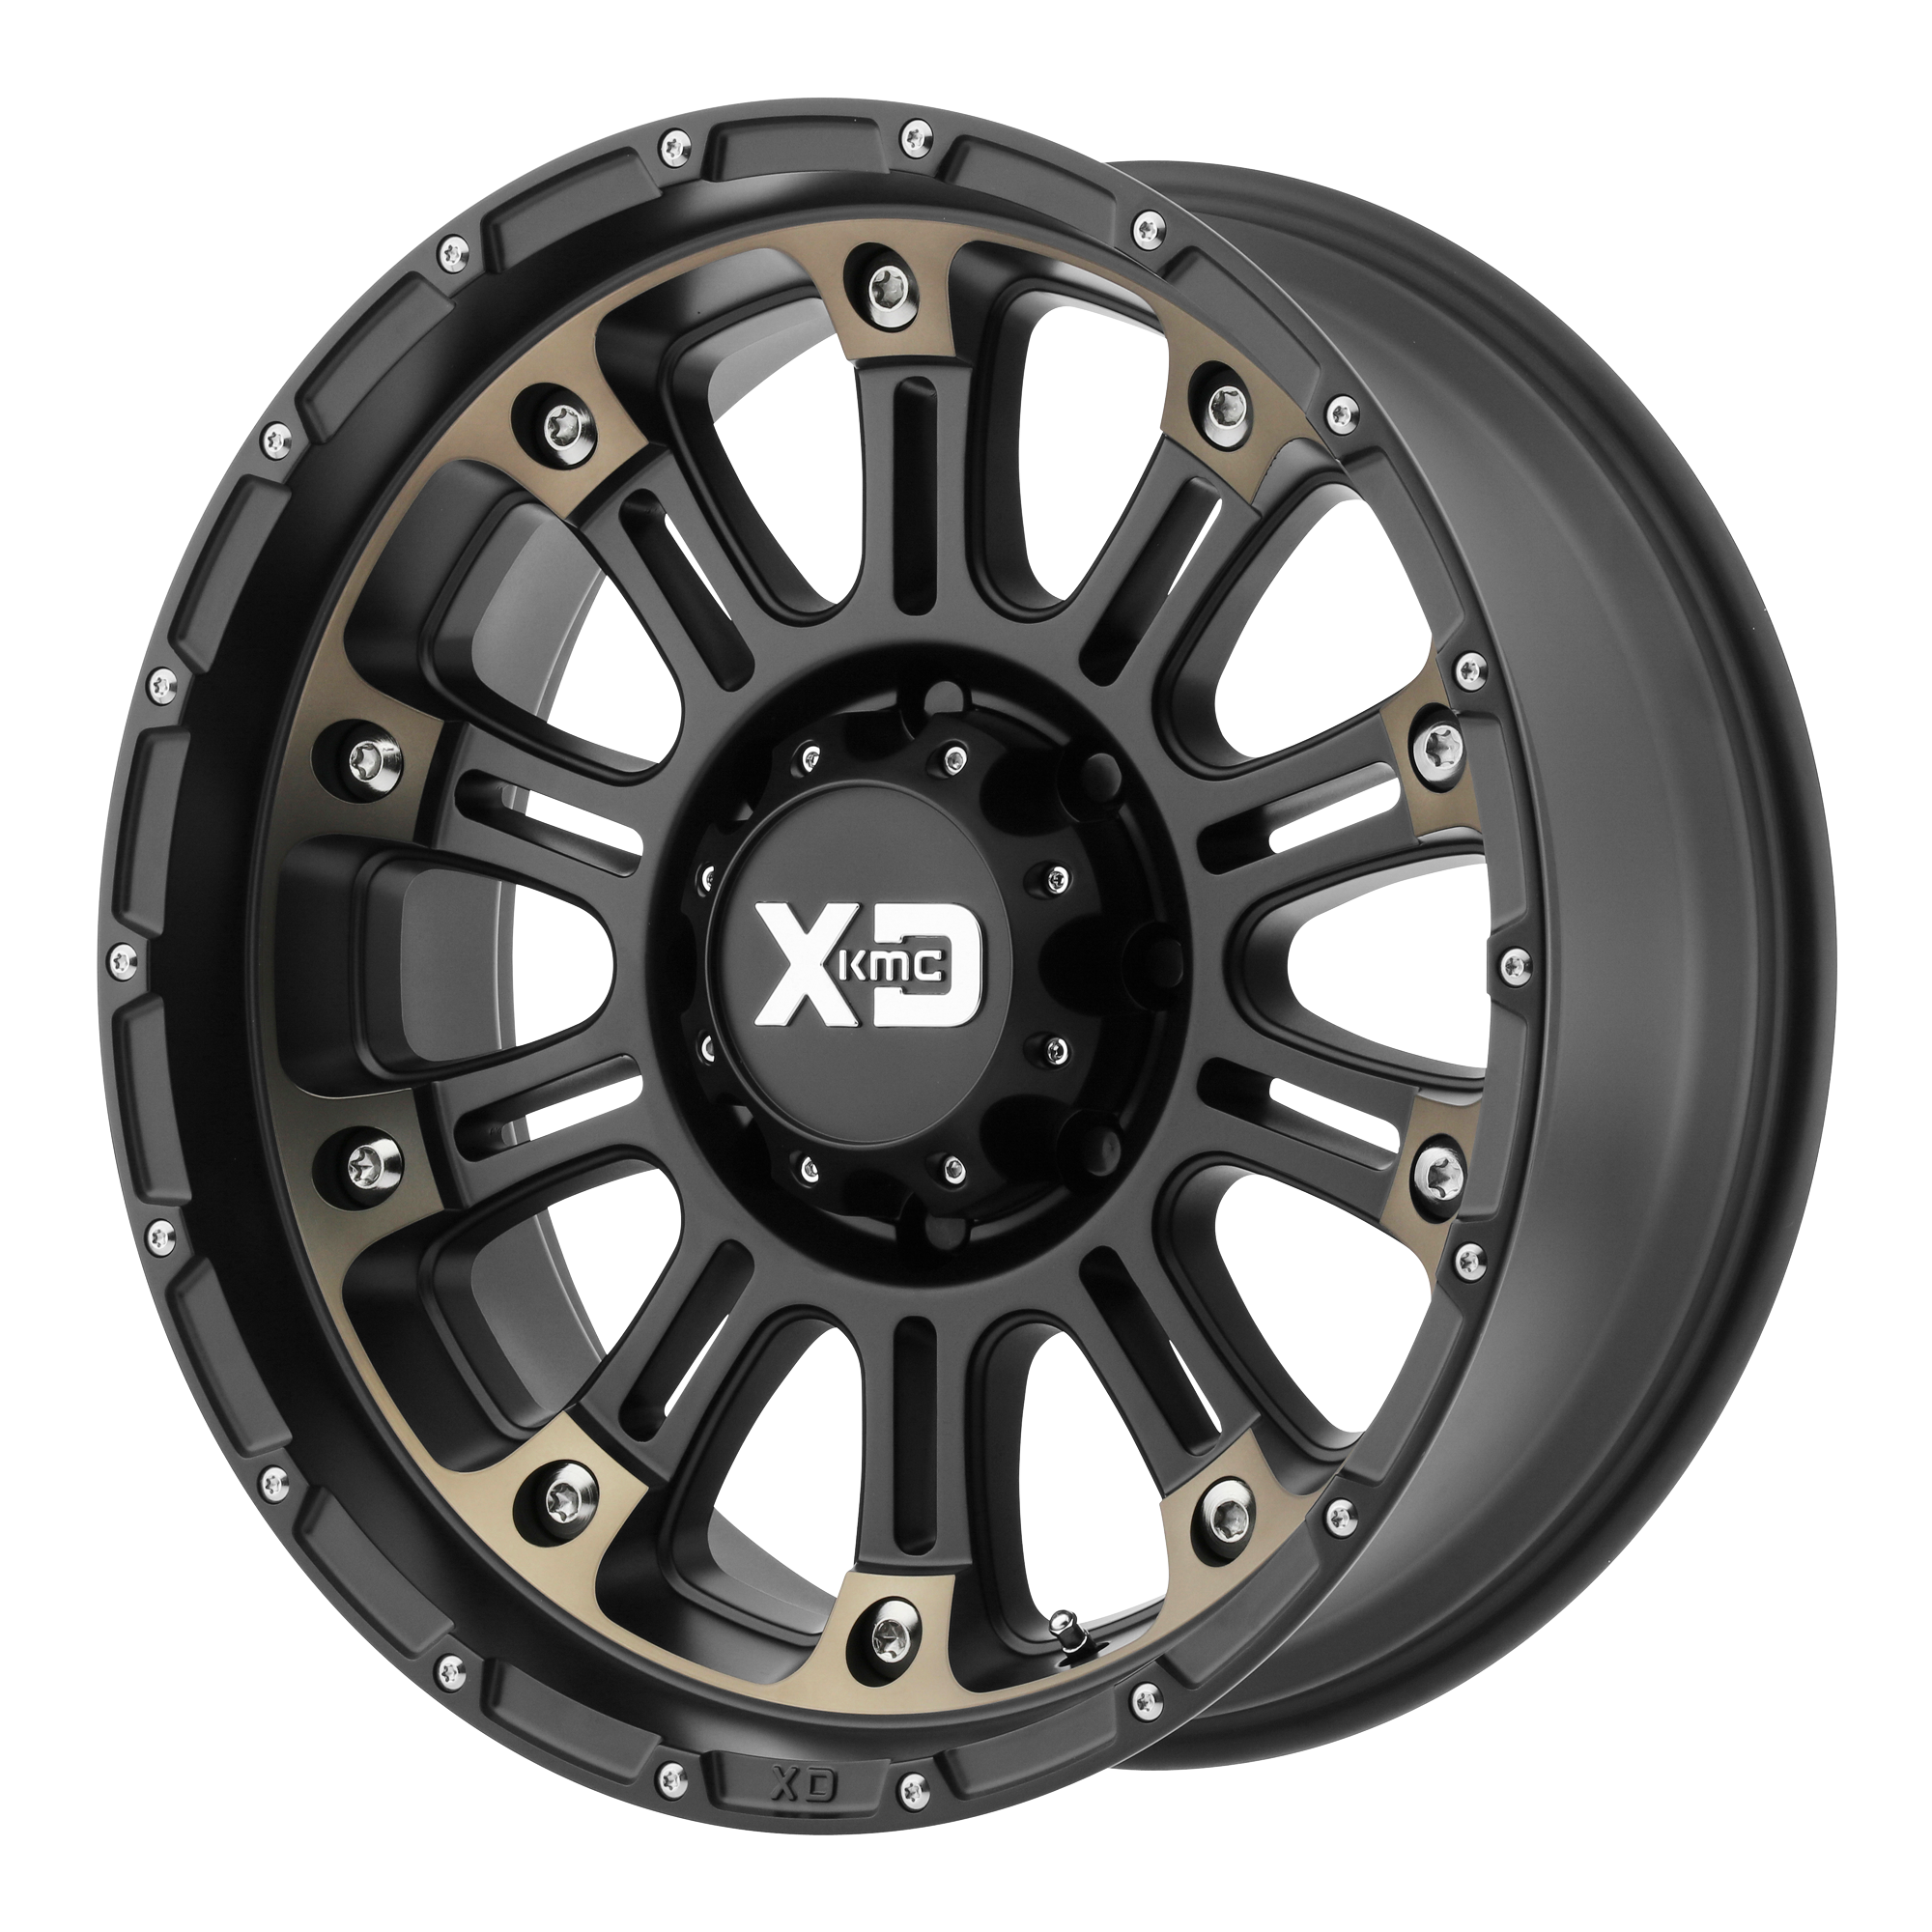 XD SERIES BY KMC WHEELS XD829 HOSS II Satin Black Machined With Dark Tint Clear Coat